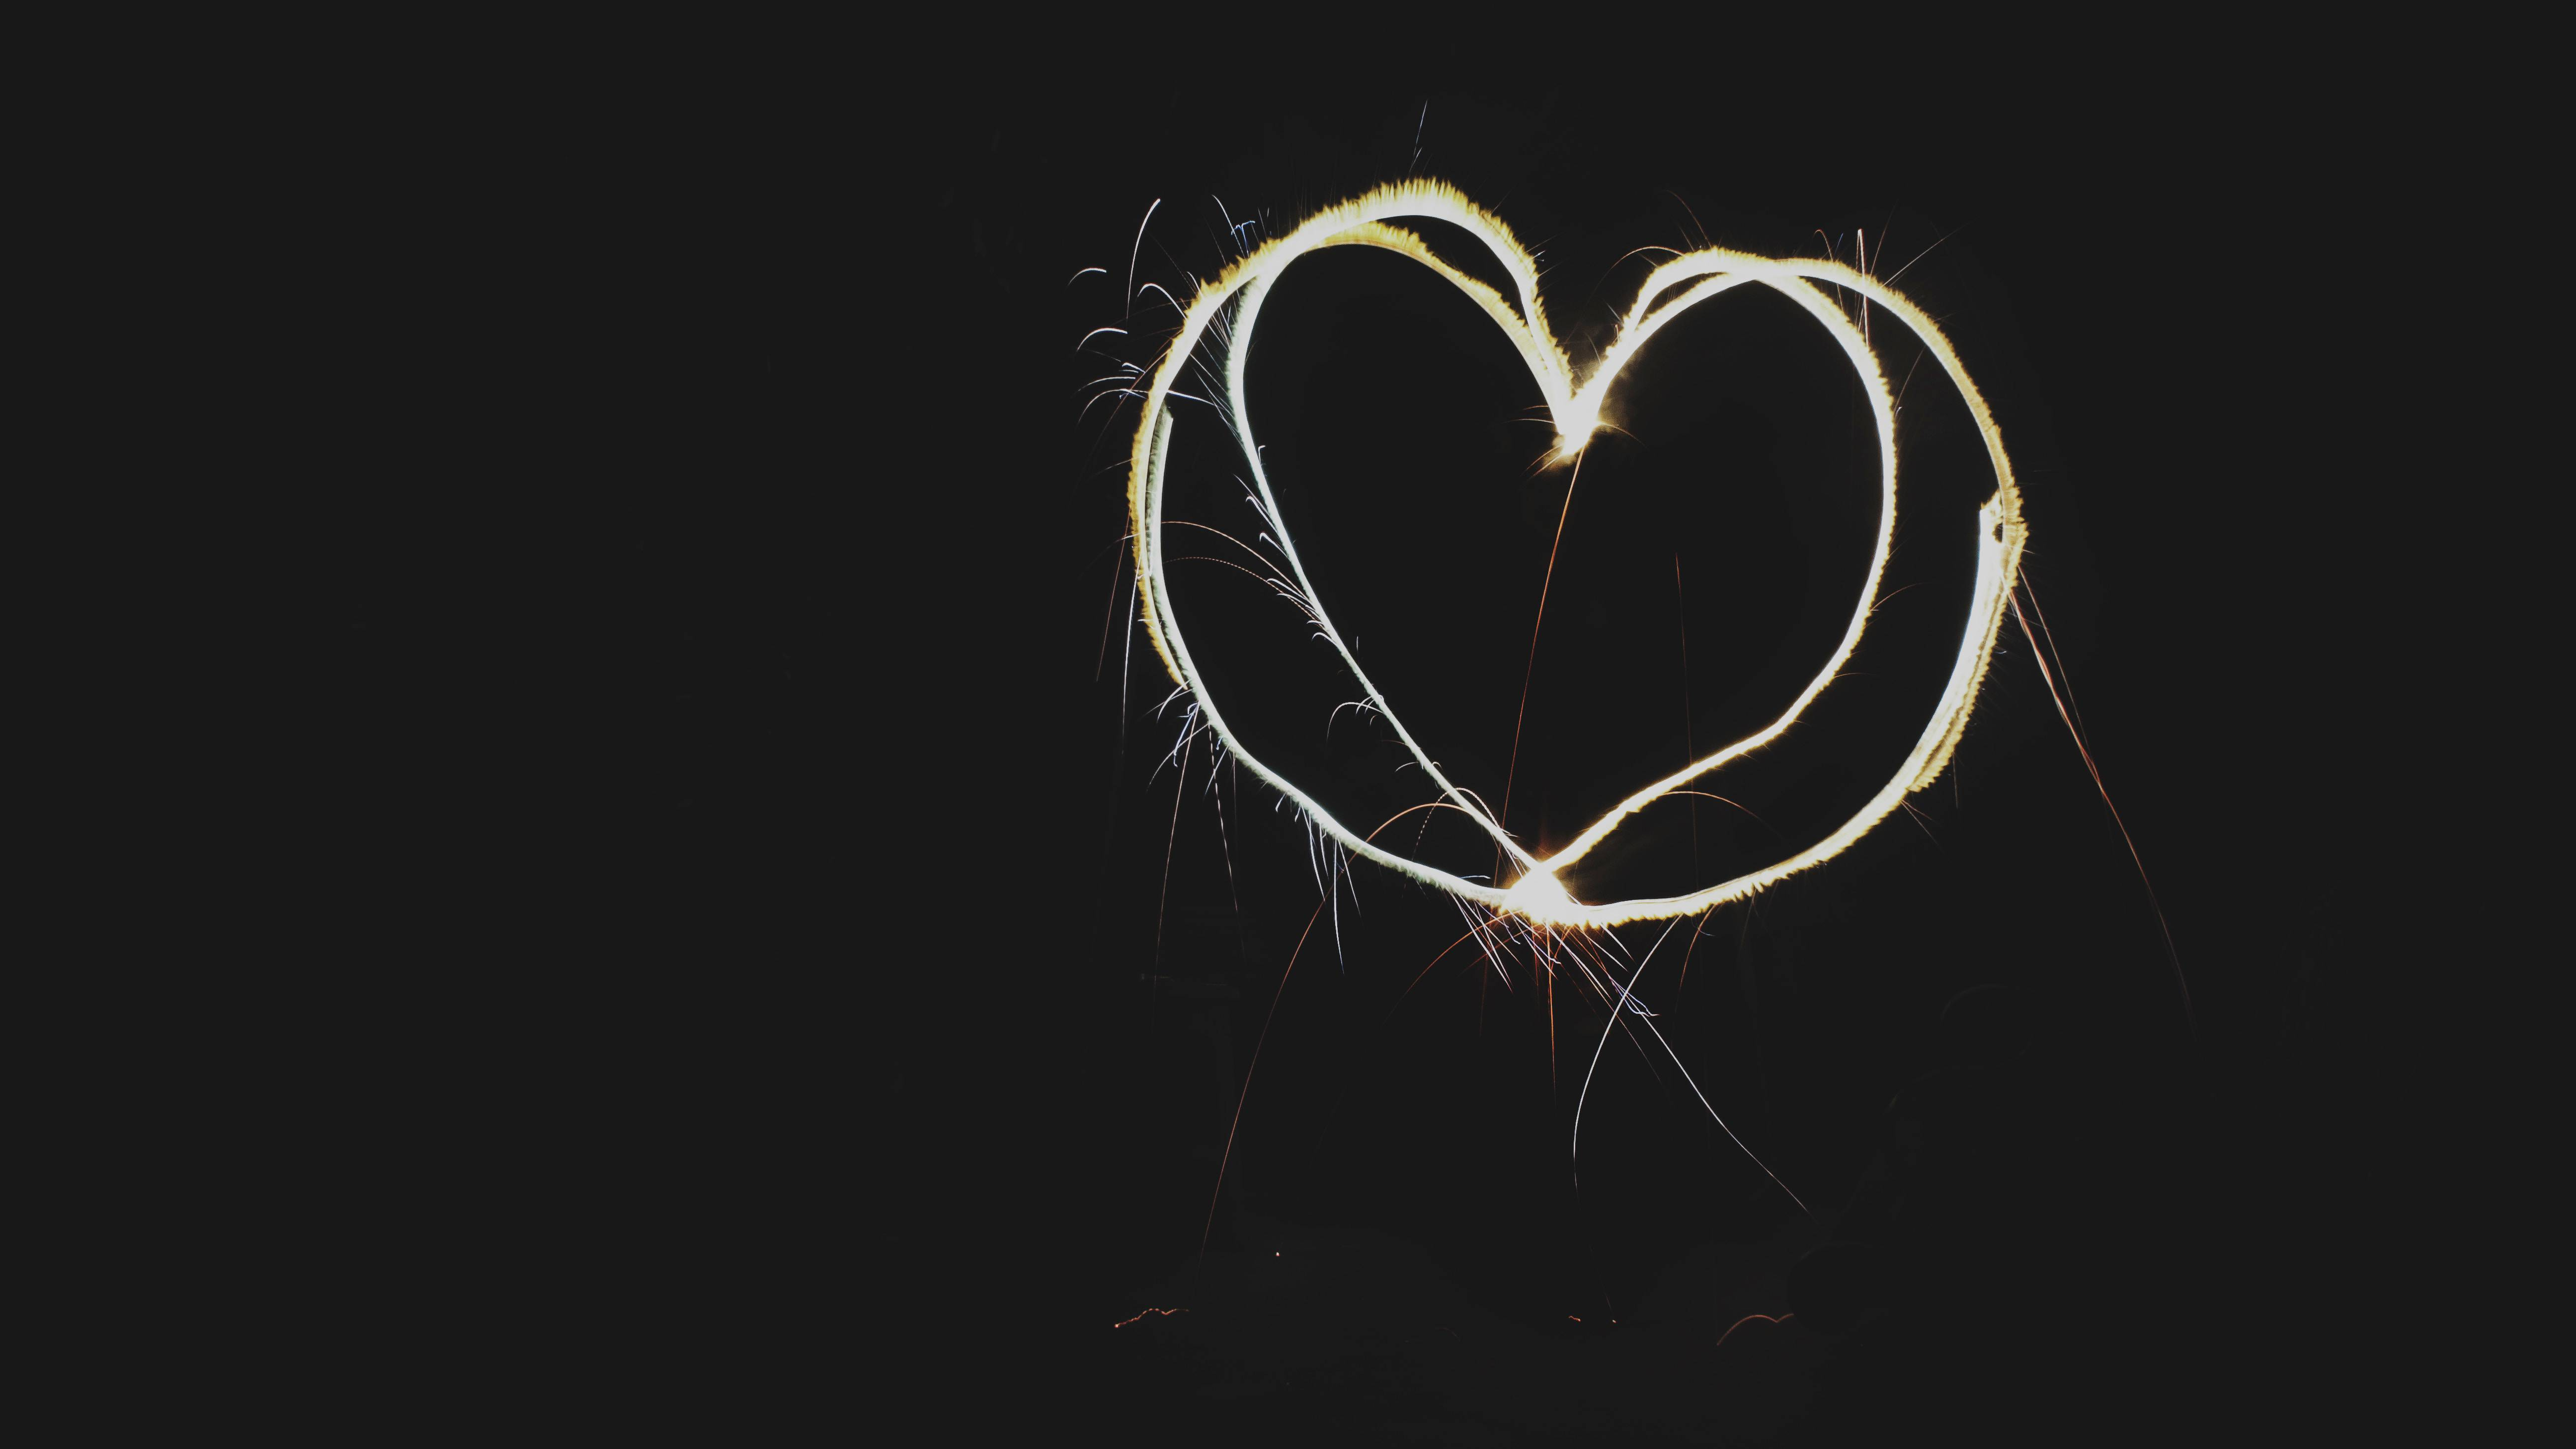 Heart Light Shape Dark Background Wallpaper